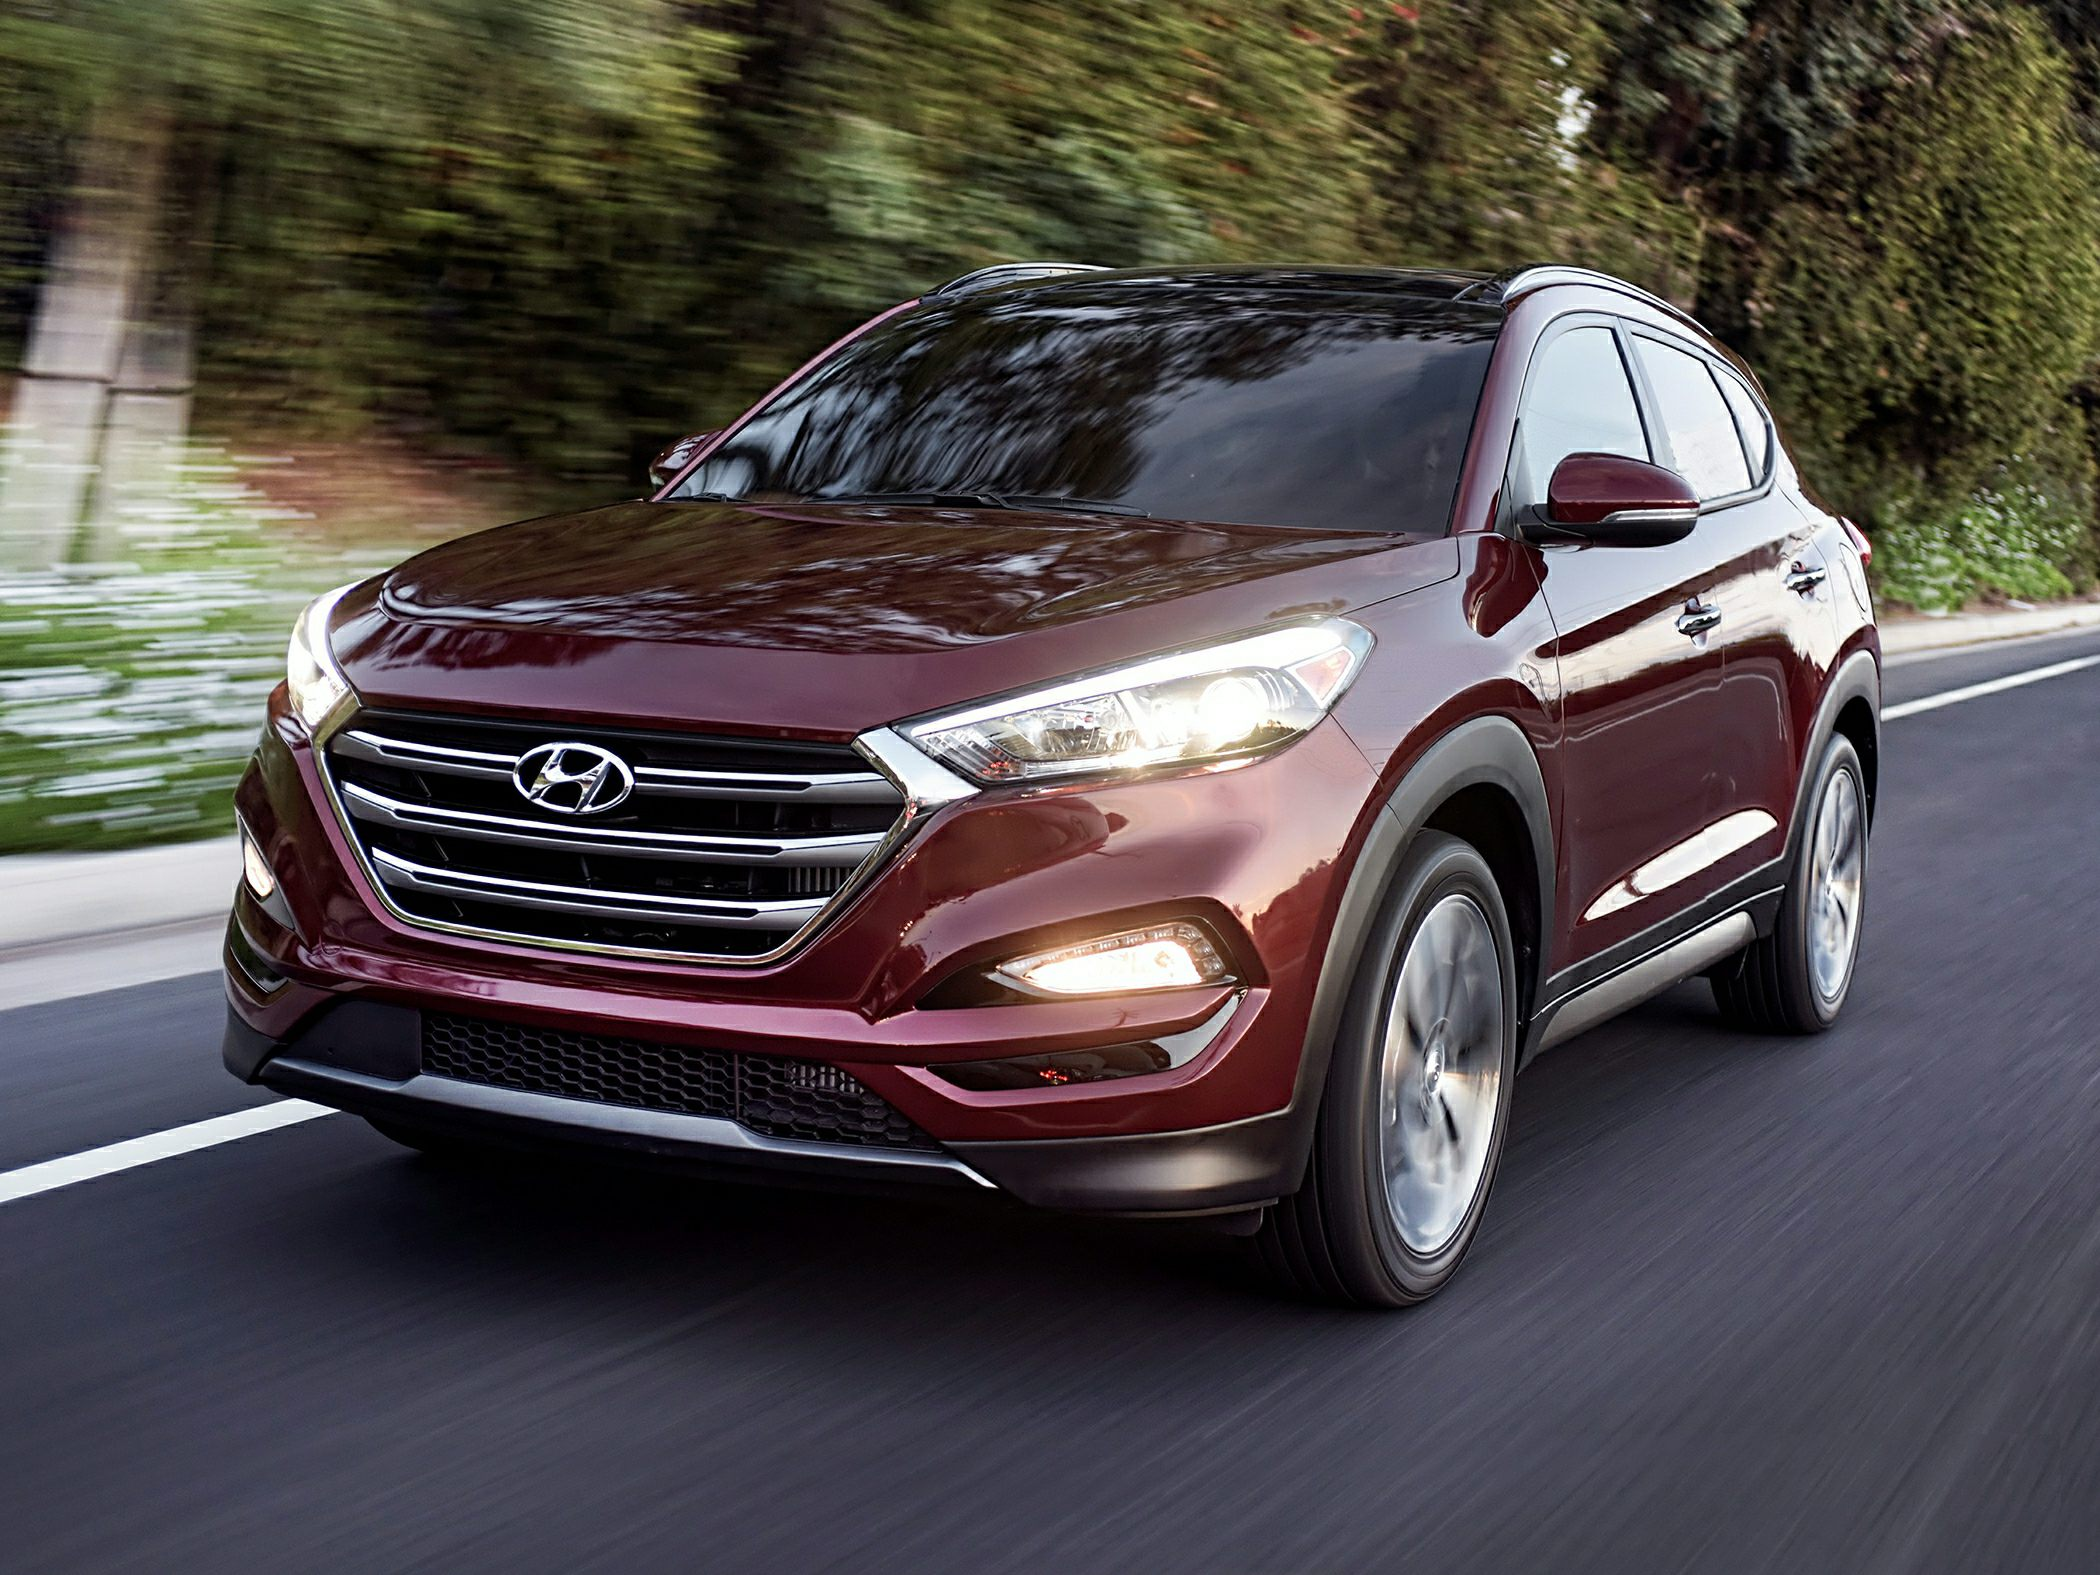 benefits htm buying buy lease of purchase leasing hyundai vs or research